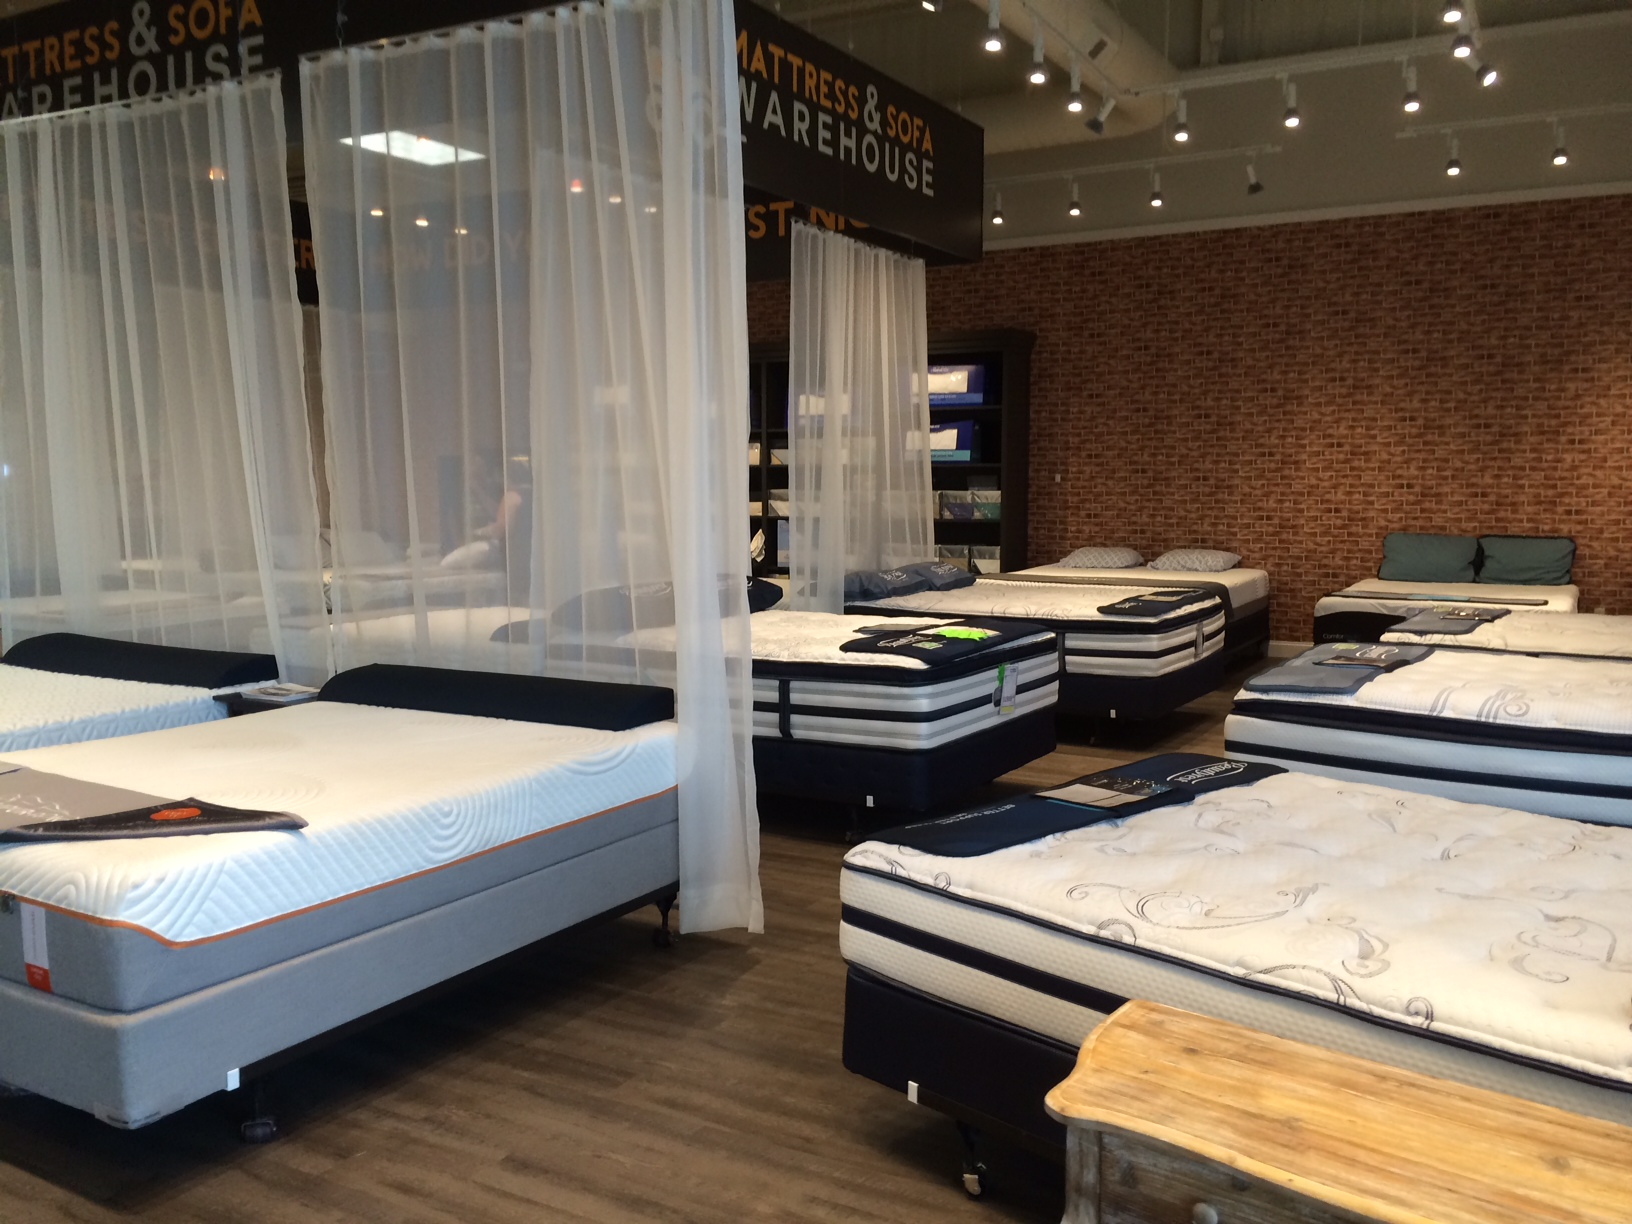 Mattress Furniture Mattress Sofa Warehouse